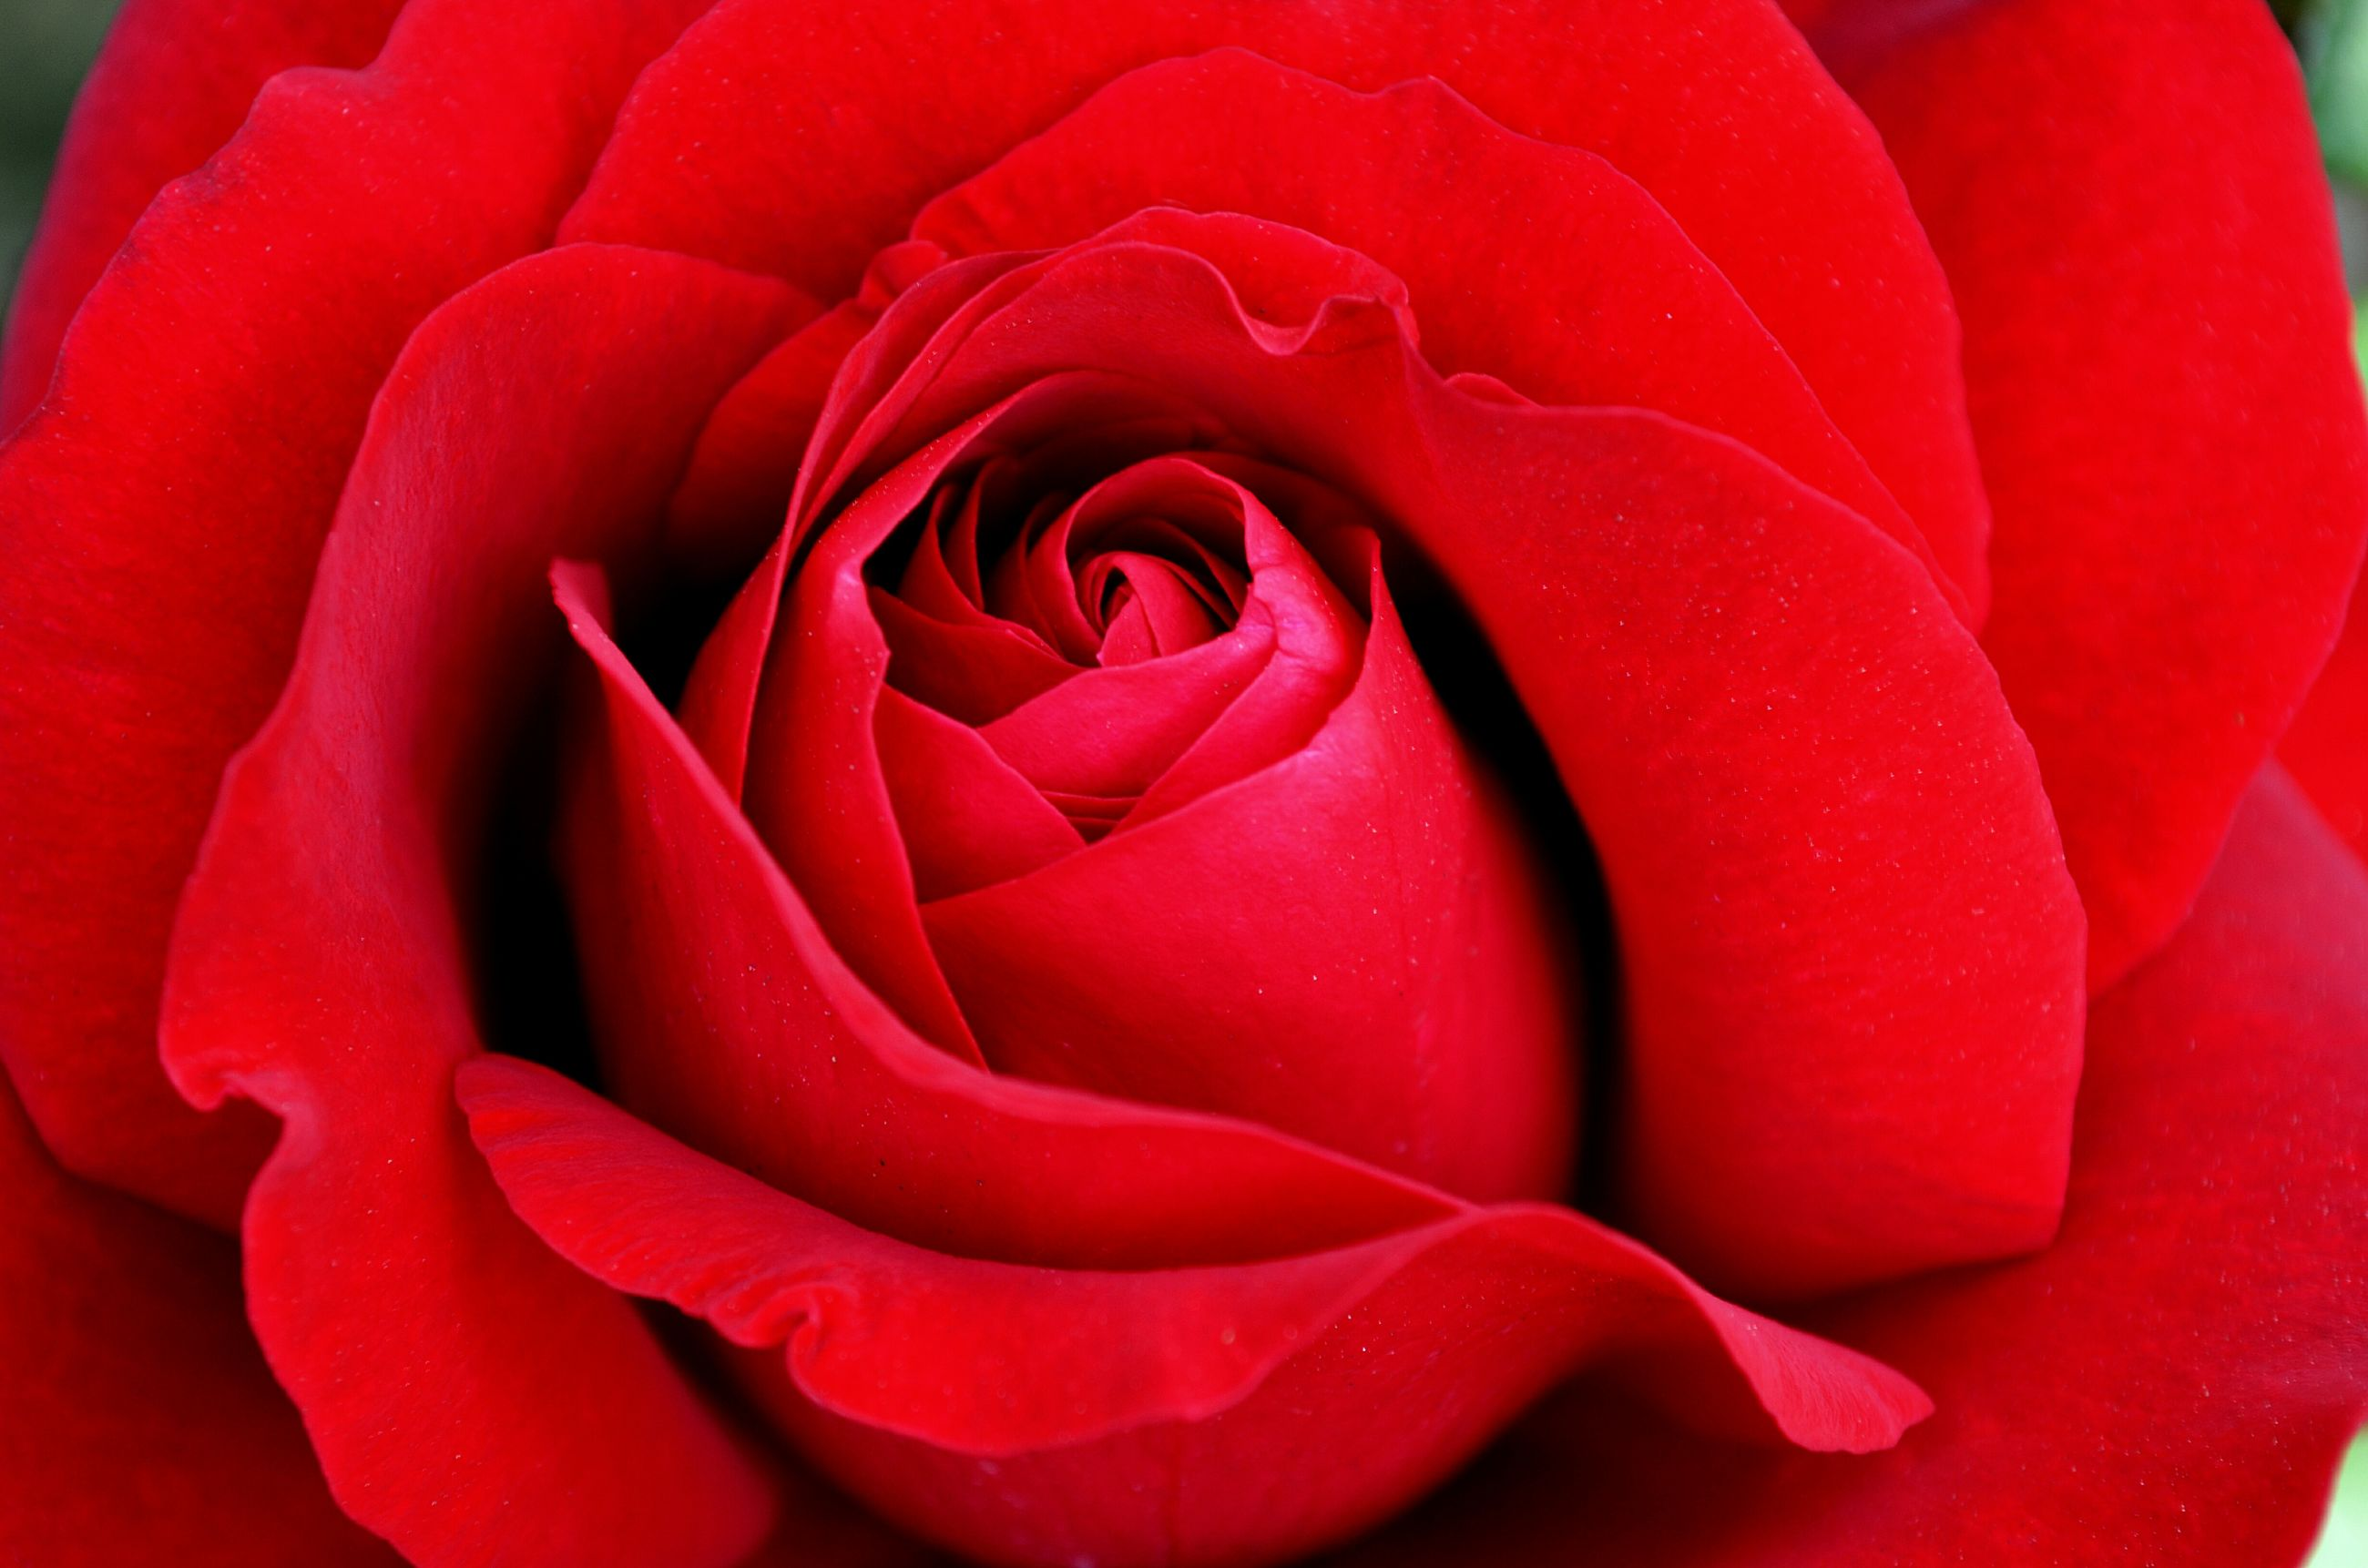 flower, petal, flower head, rose - flower, freshness, fragility, beauty in nature, single flower, red, rose, close-up, growth, single rose, nature, blooming, pink color, natural pattern, in bloom, backgrounds, macro